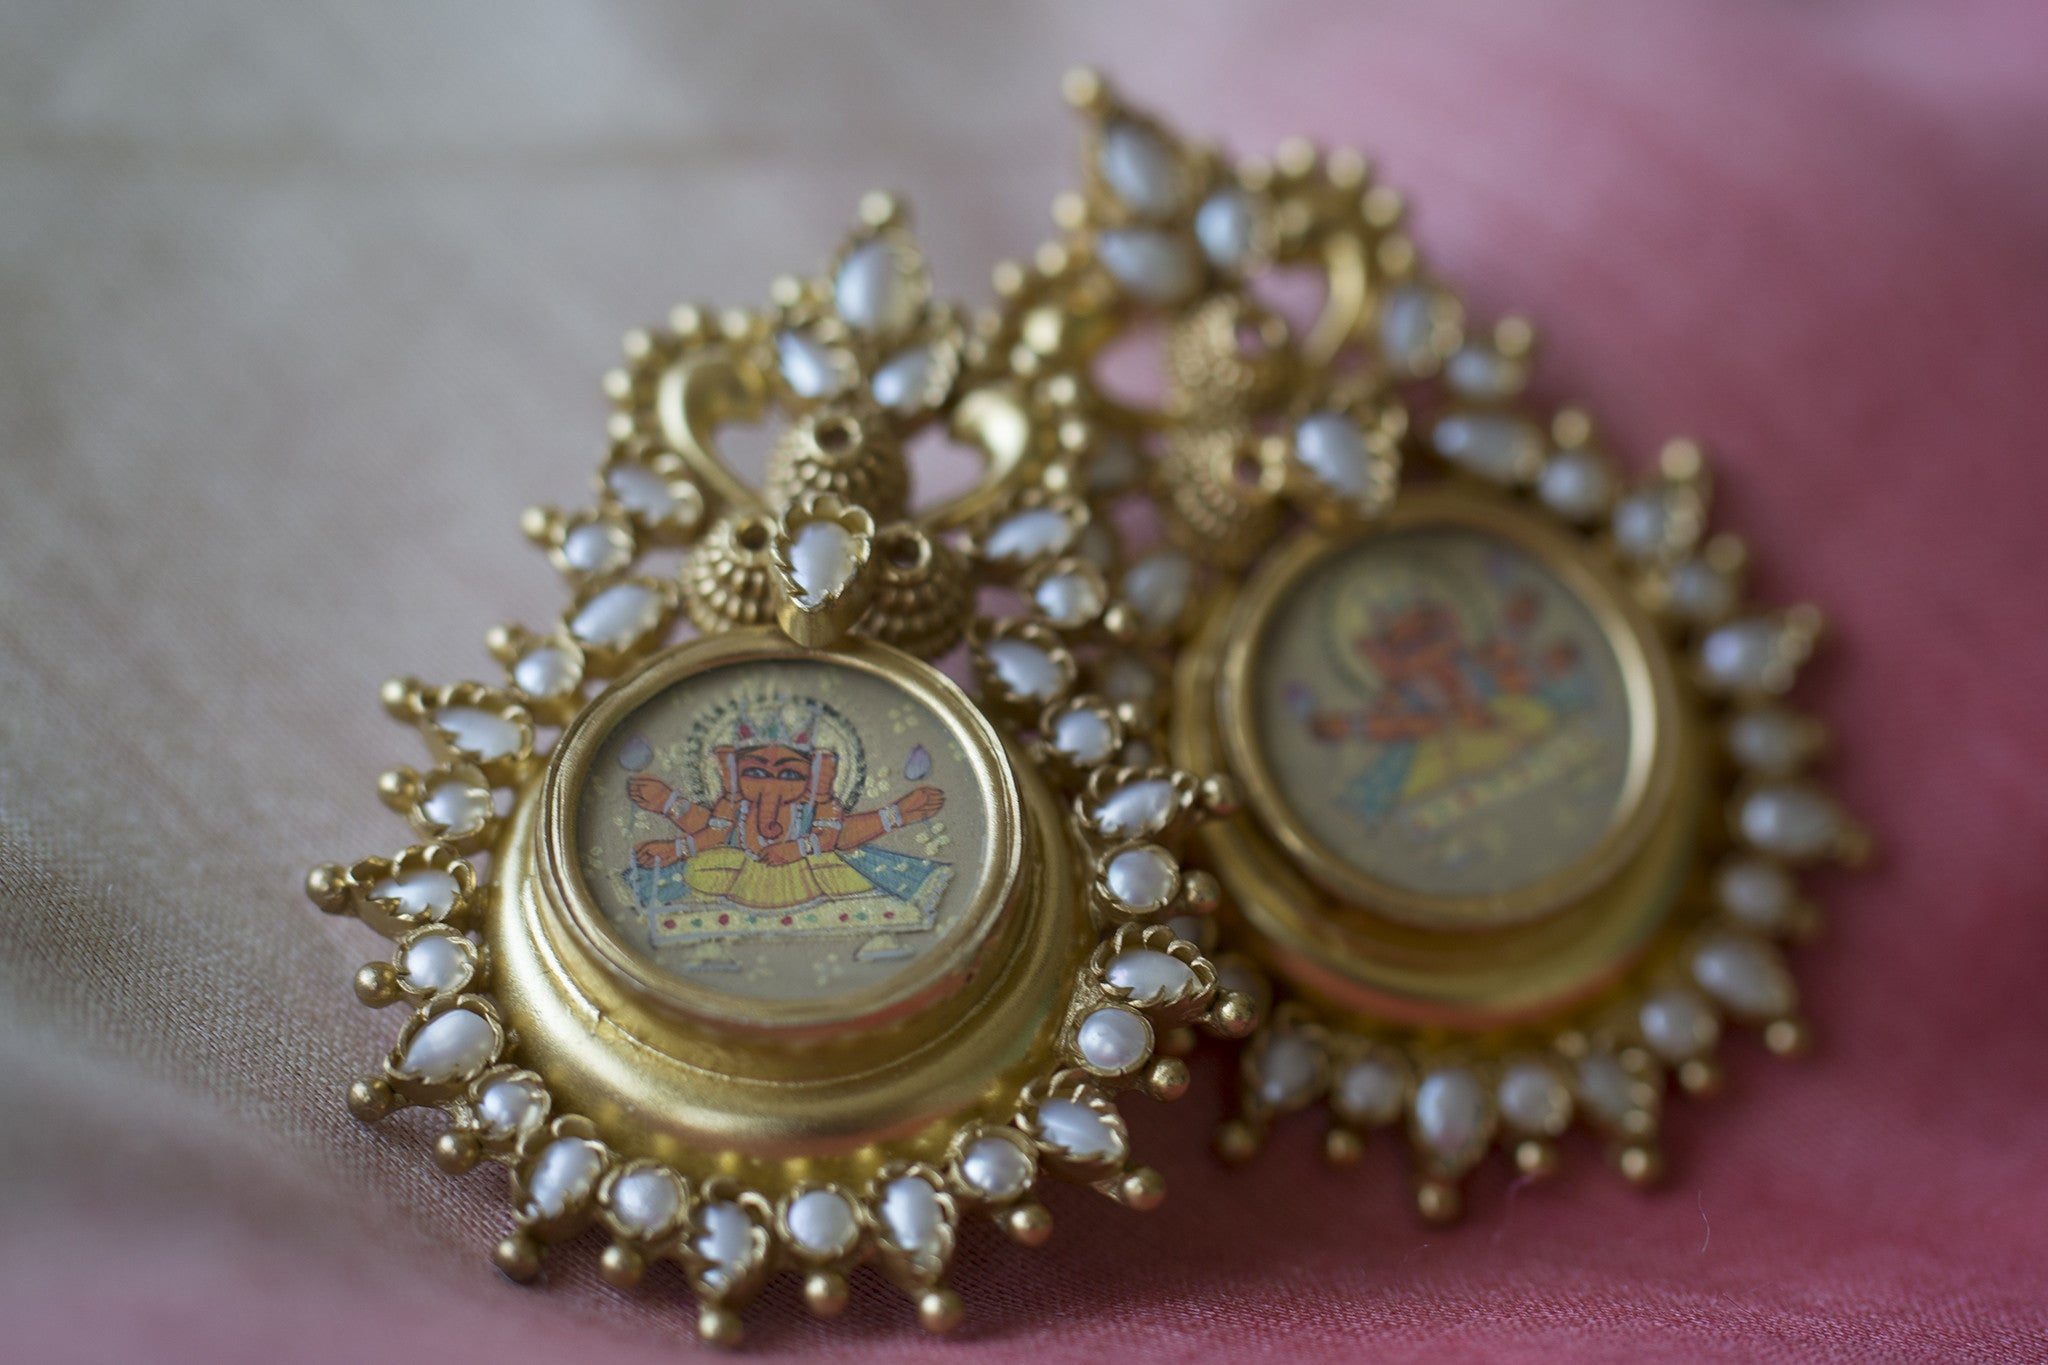 20a177-silver-gold-plated-amrapali-earrings-hand-painted-ganesh-pearl-alternate-view